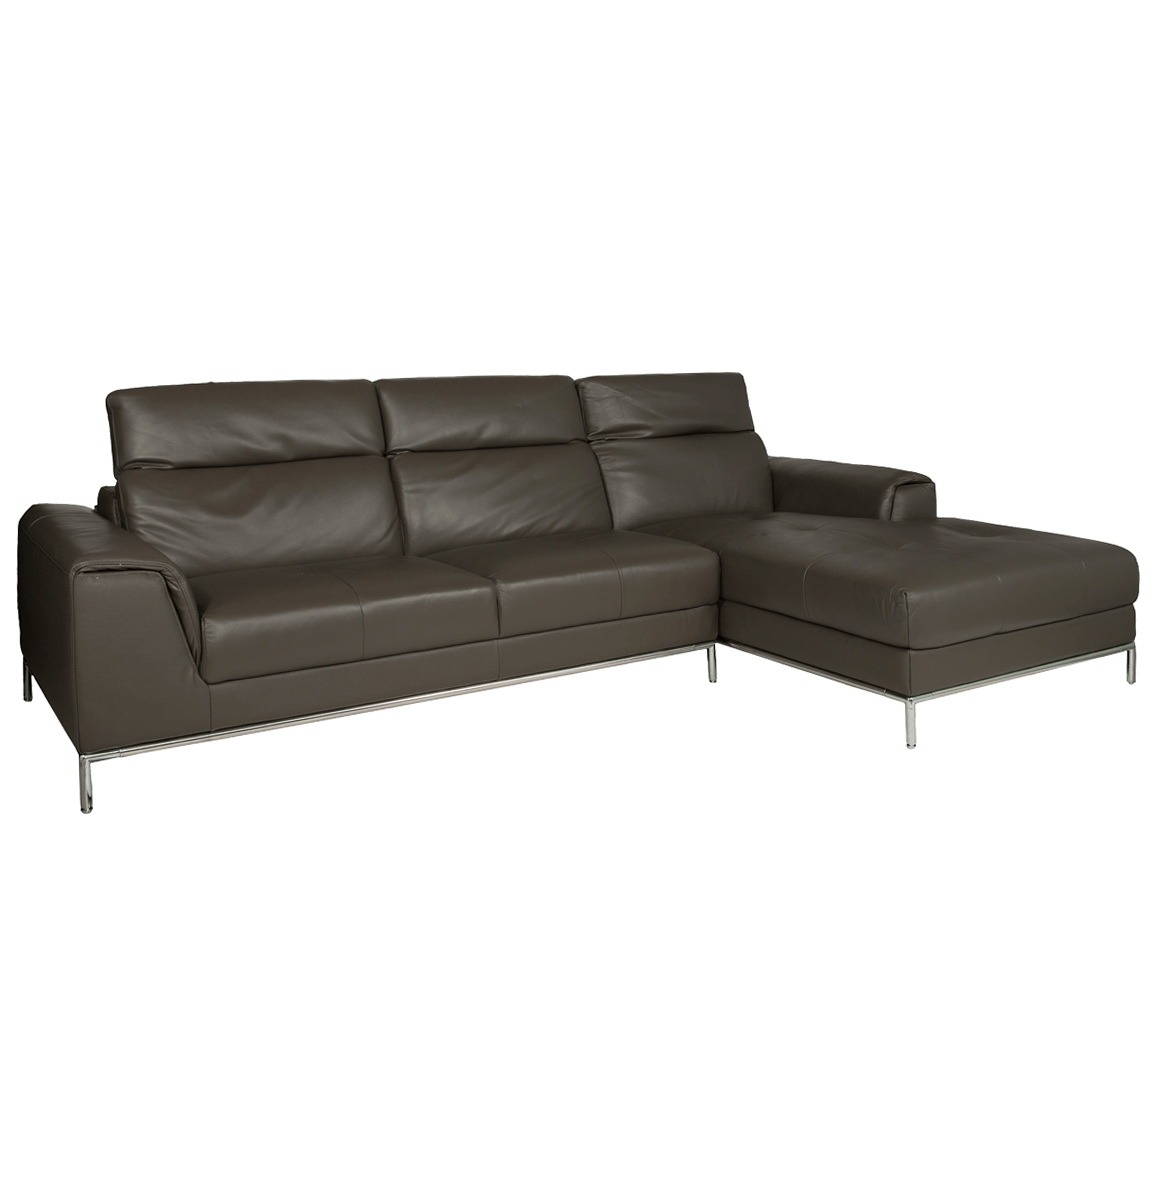 Sofa With Chaise Leather